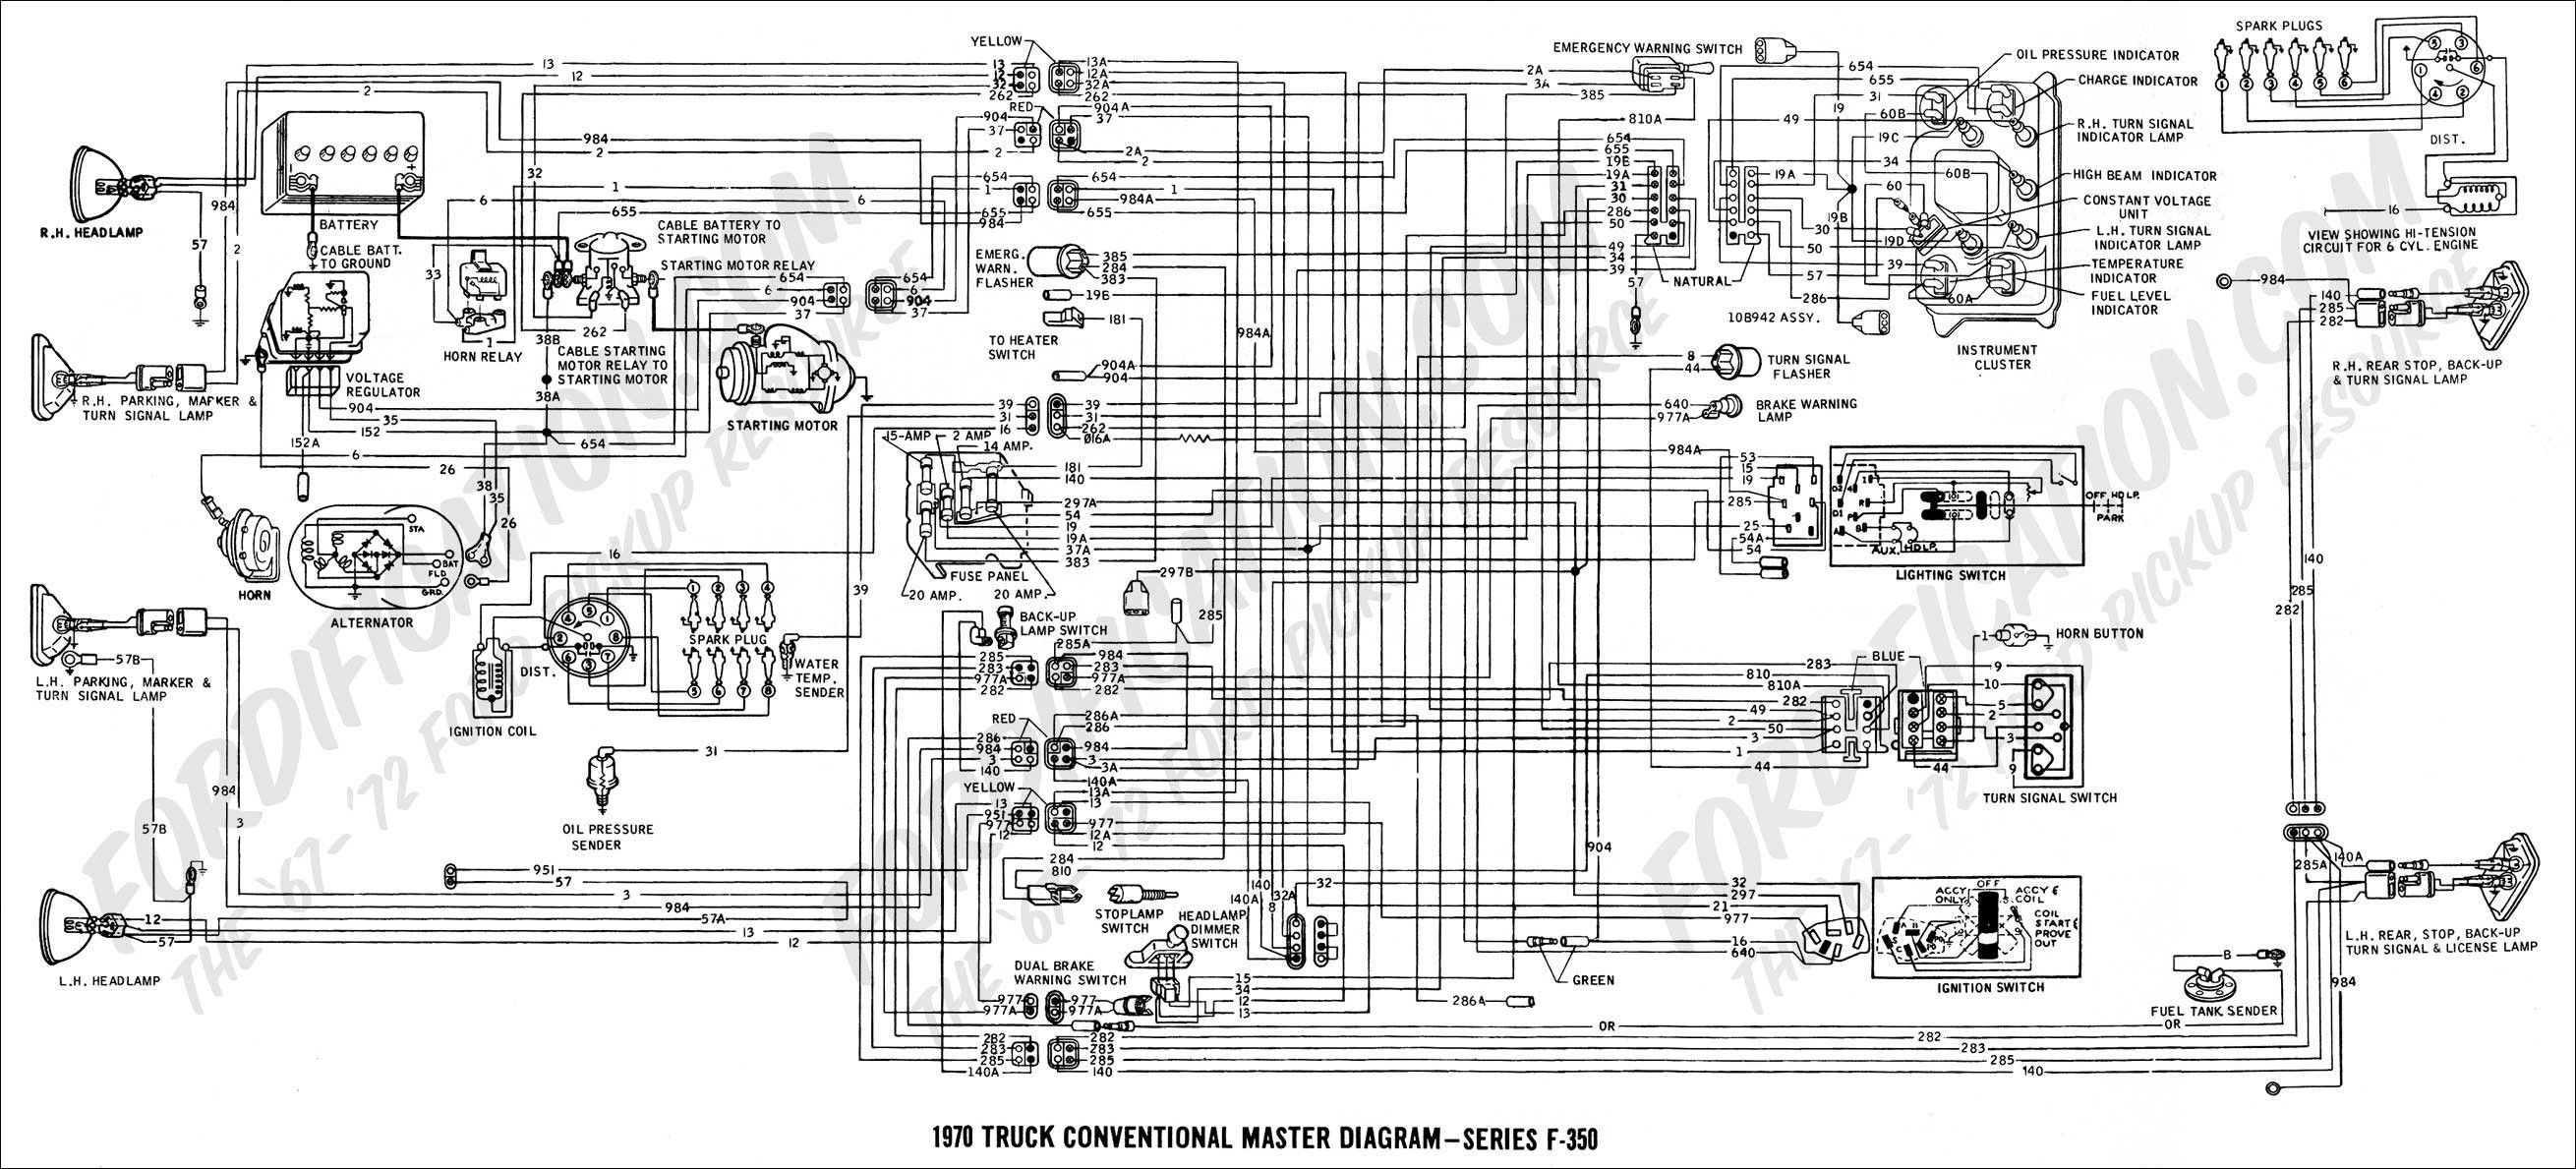 Muncie Pto Wiring Diagram Awesome In 2020 Powerstroke Ford F350 Ford F250